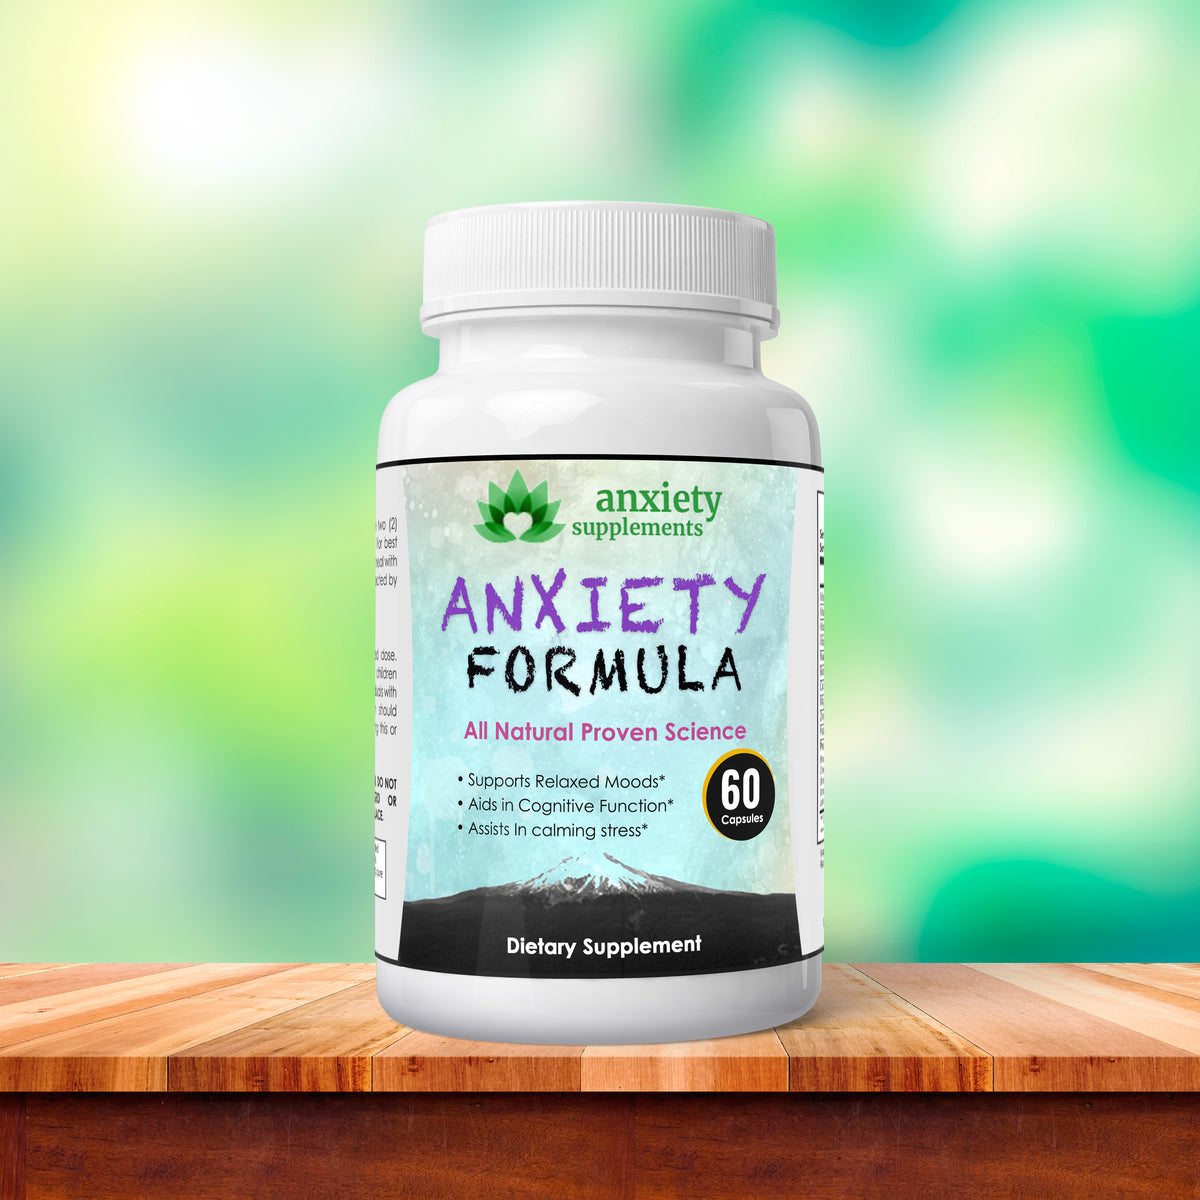 Anxiety supplement